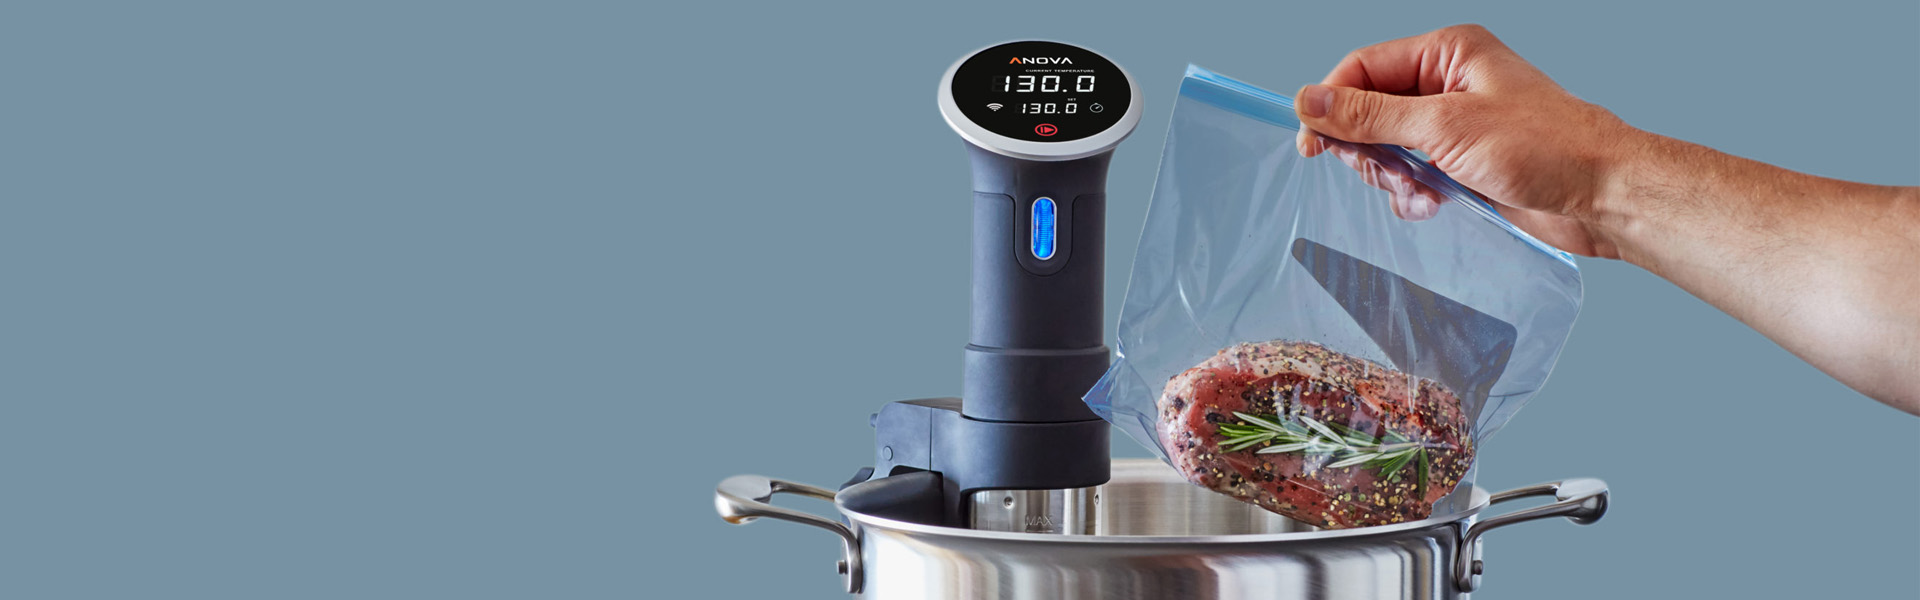 7 Gadgets That Make Healthy Eating a Breeze